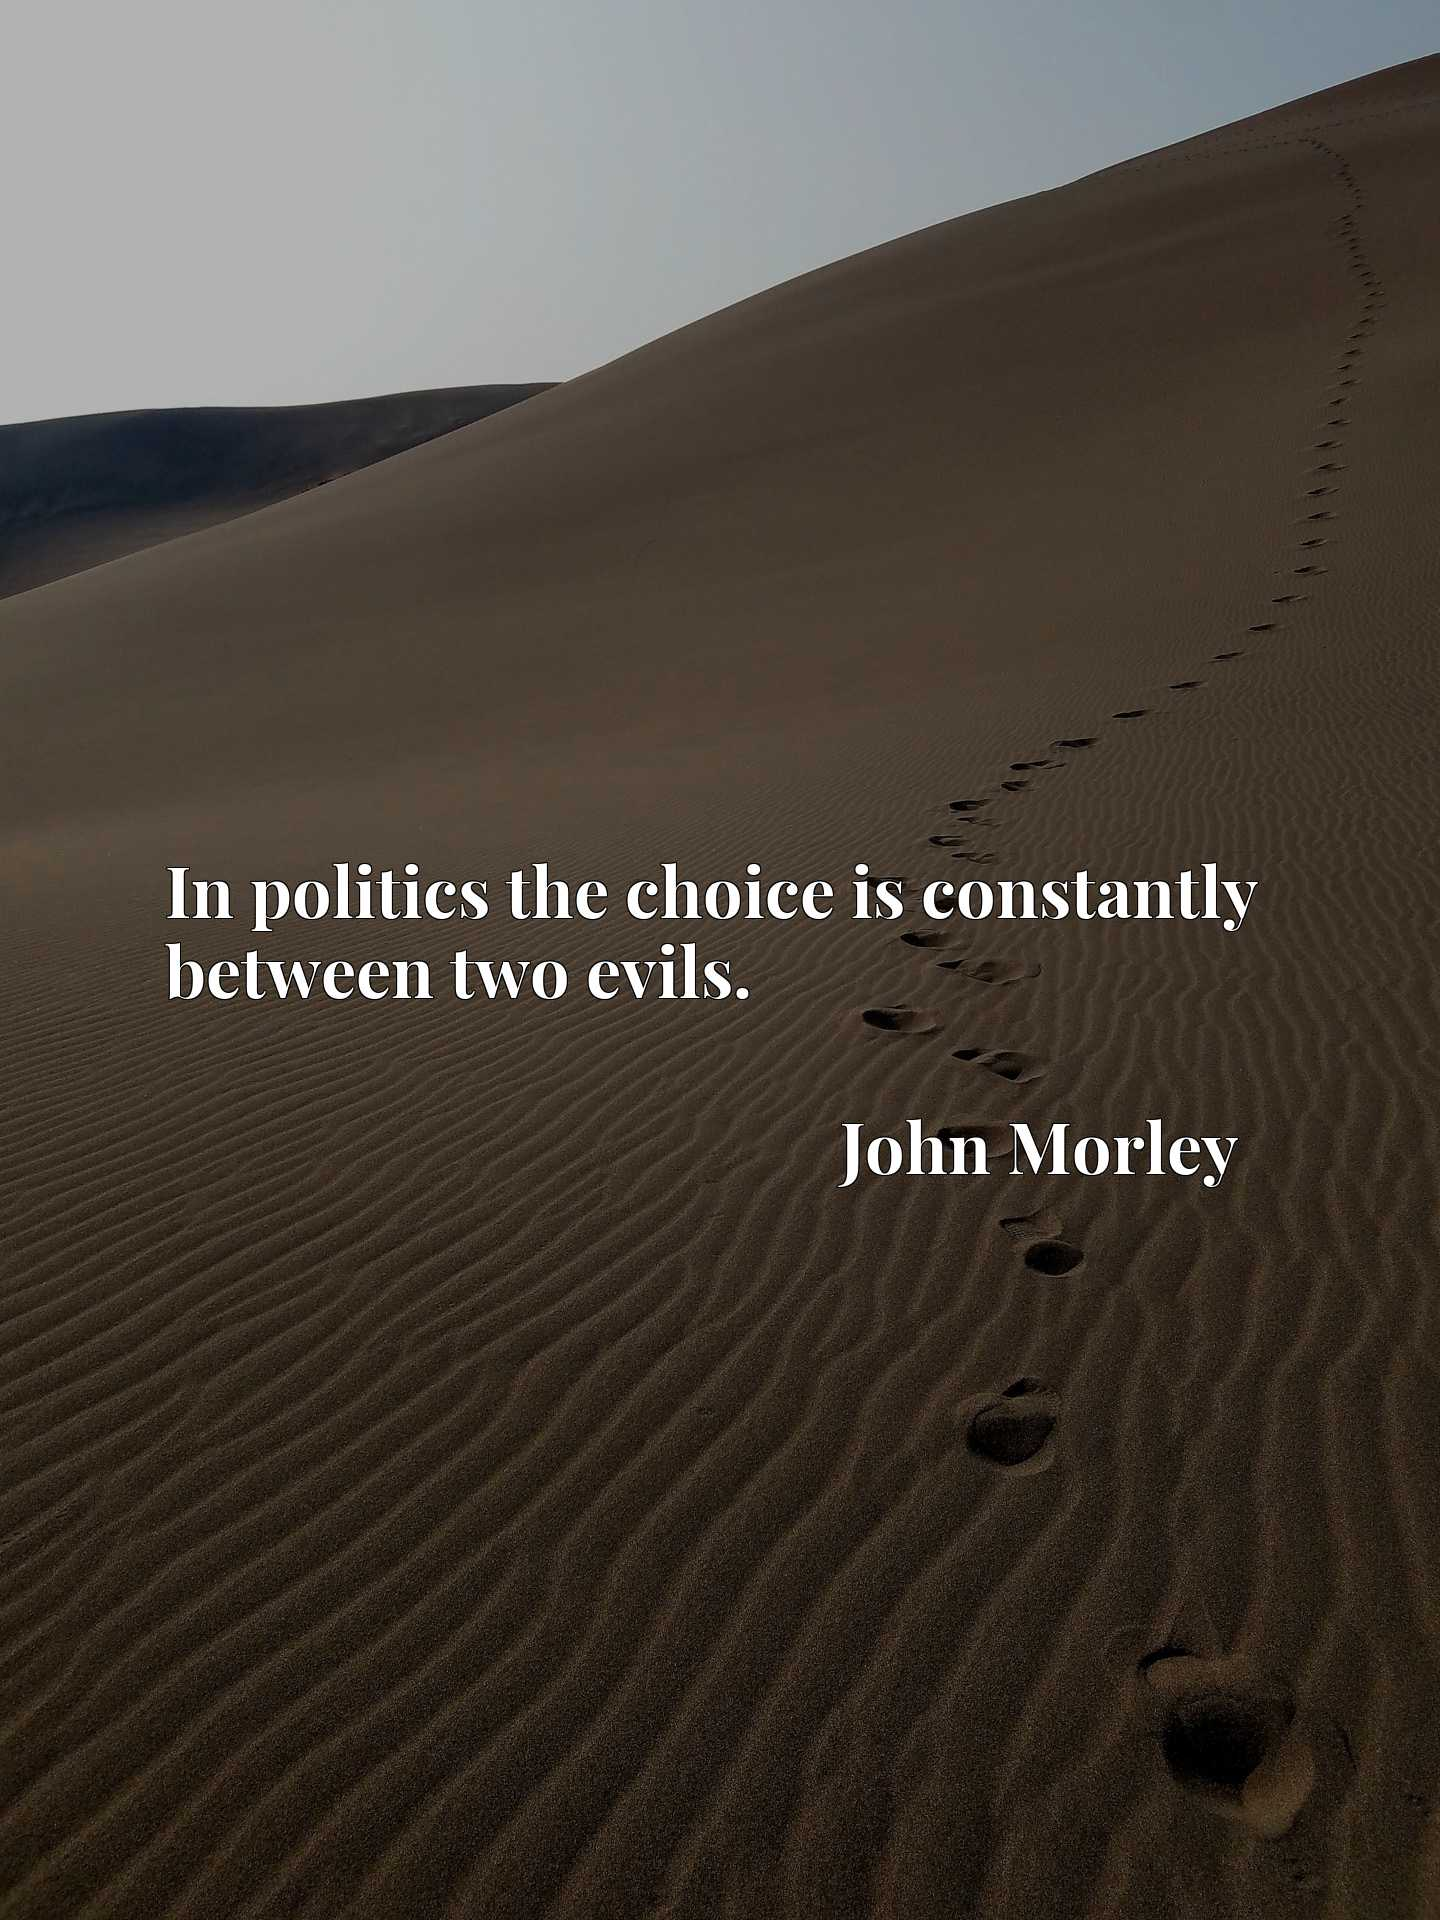 Quote Picture :In politics the choice is constantly between two evils.